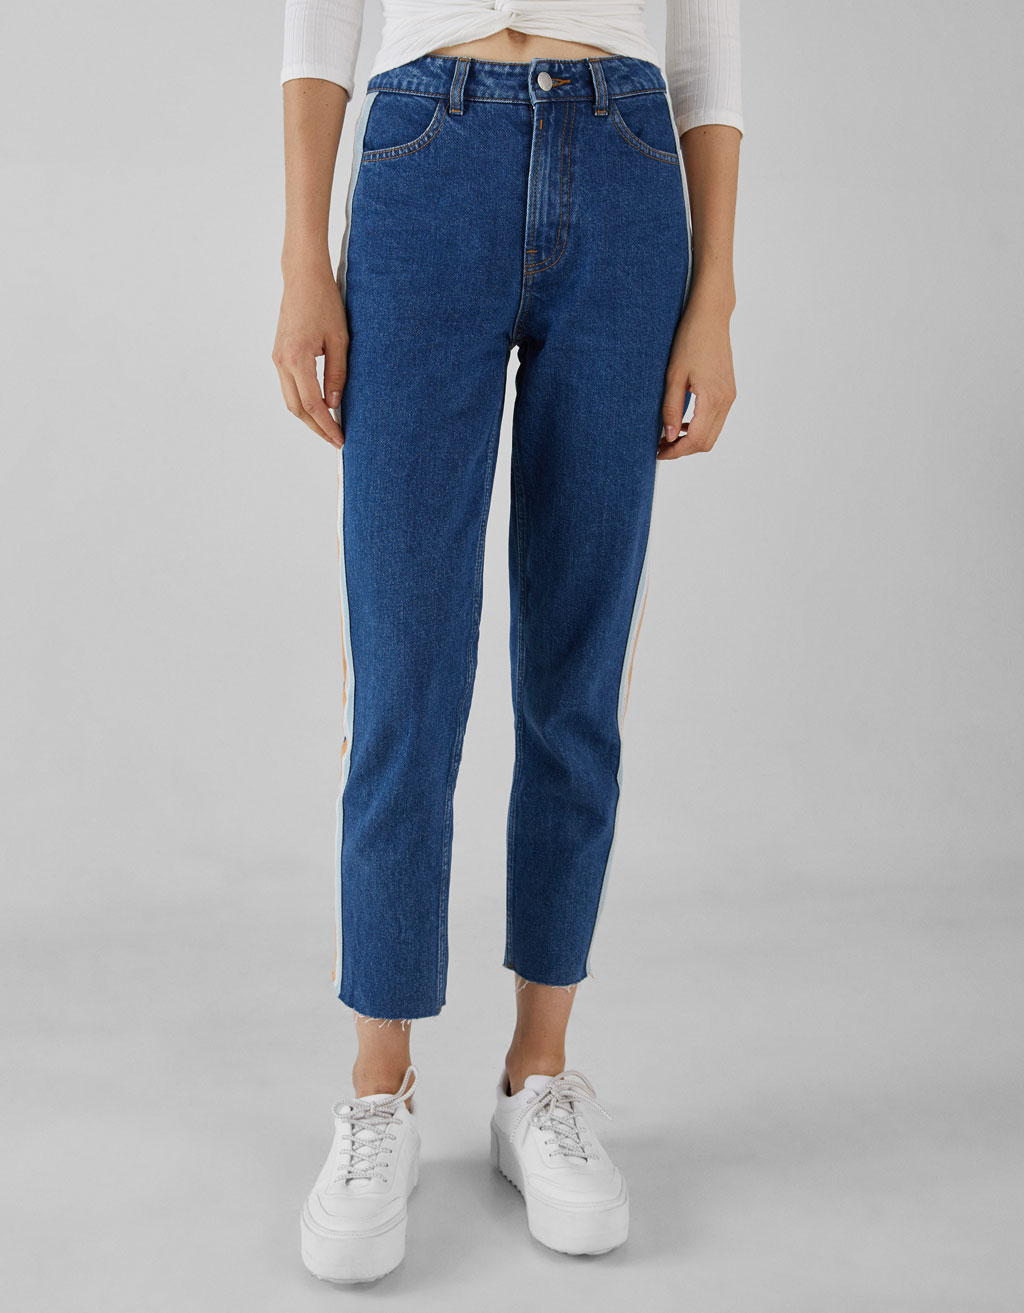 High waist mom jeans with side stripes